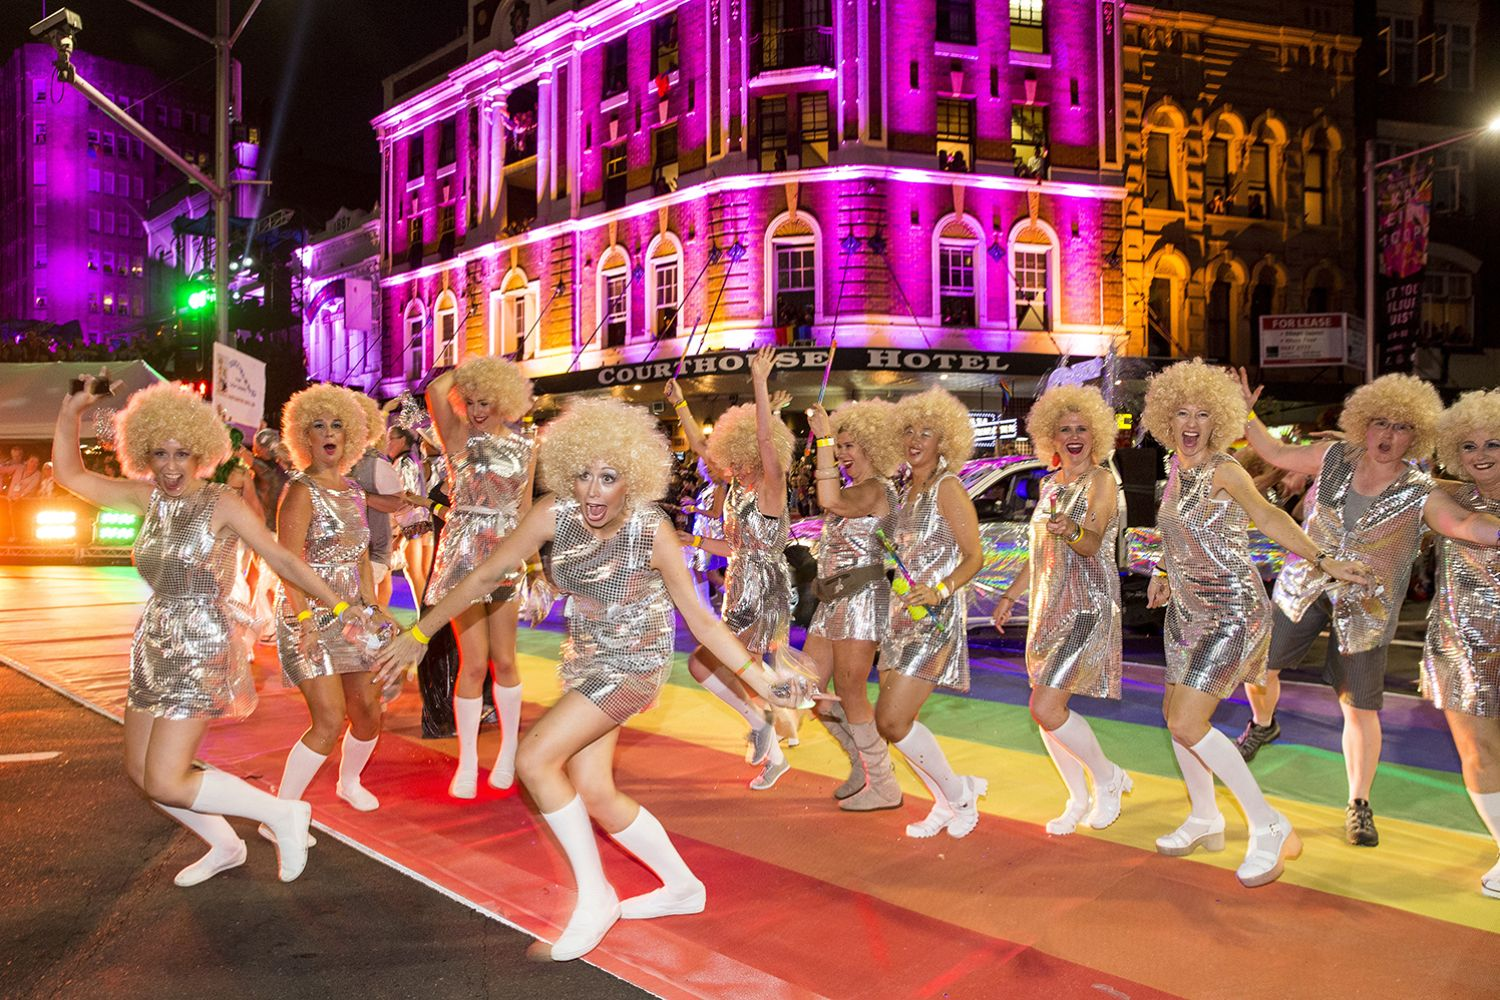 Sydney Gay and Lesbian Mardi Gras parade, Oxford Street Sydney